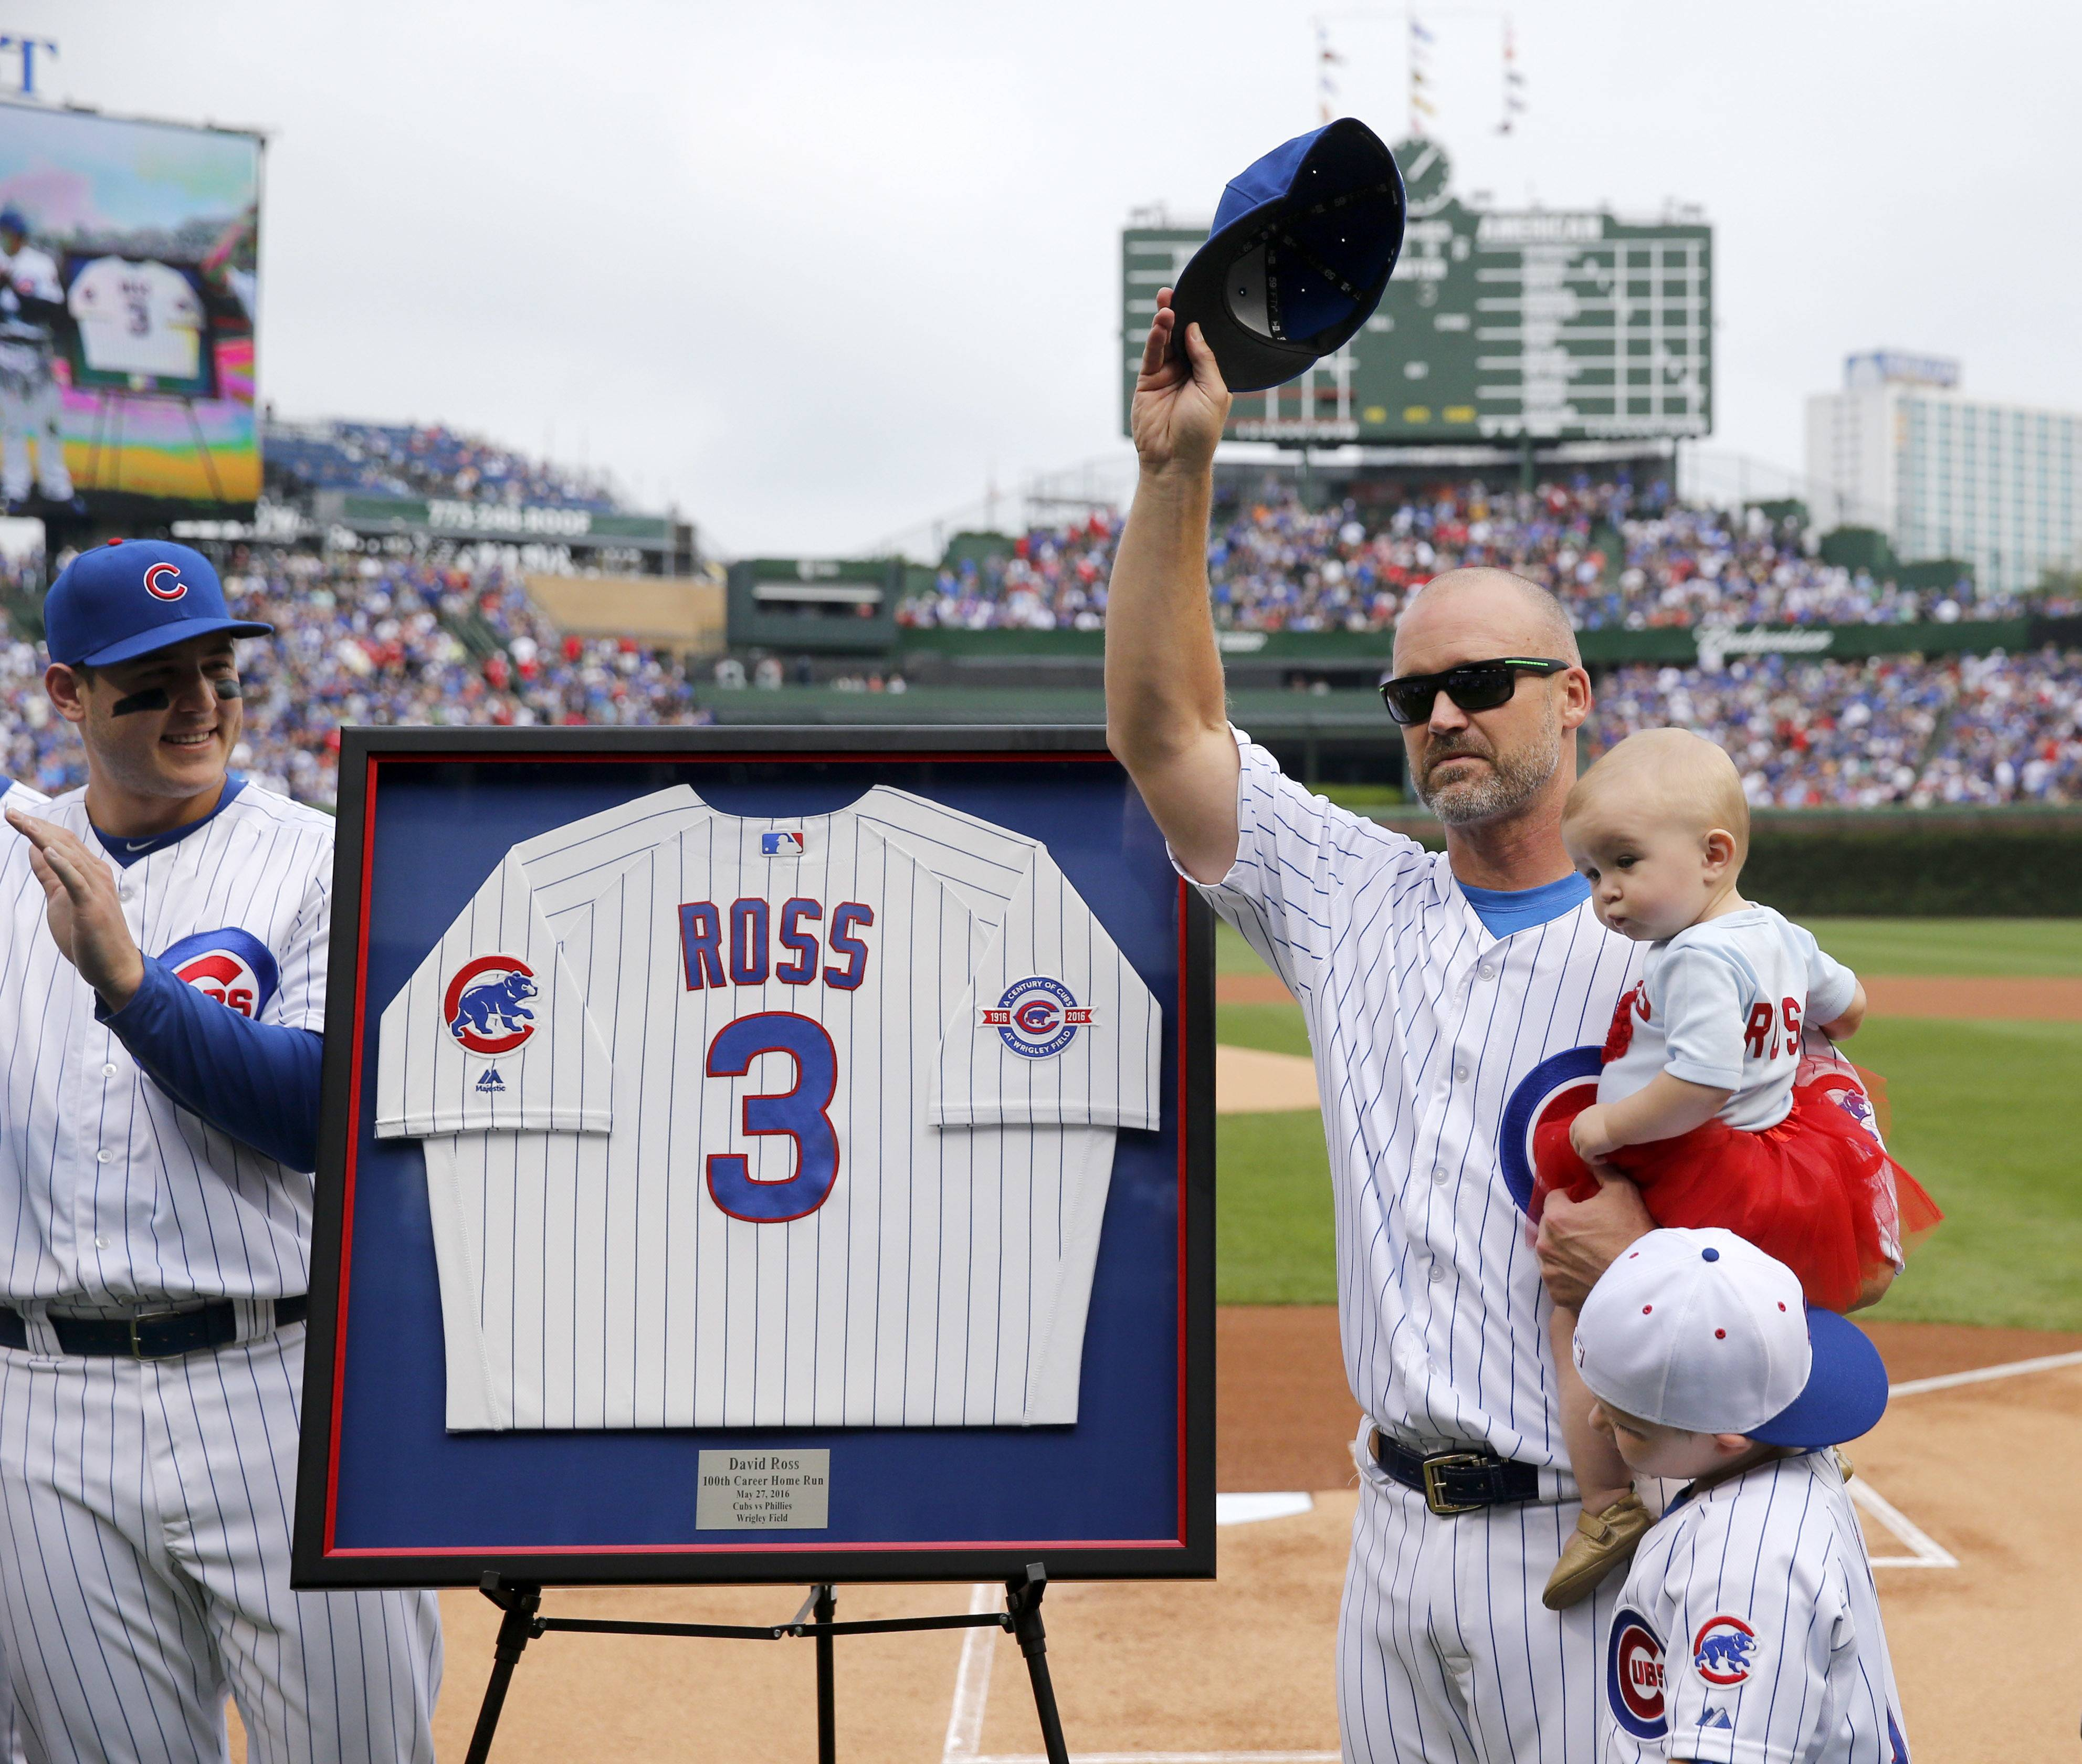 Chicago Cubs' David Ross, right, acknowledges the crowd as he is honored before Friday's game between the Cubs and the St. Louis Cardinals in Chicago. Ross had announced earlier in the season this would be his last.